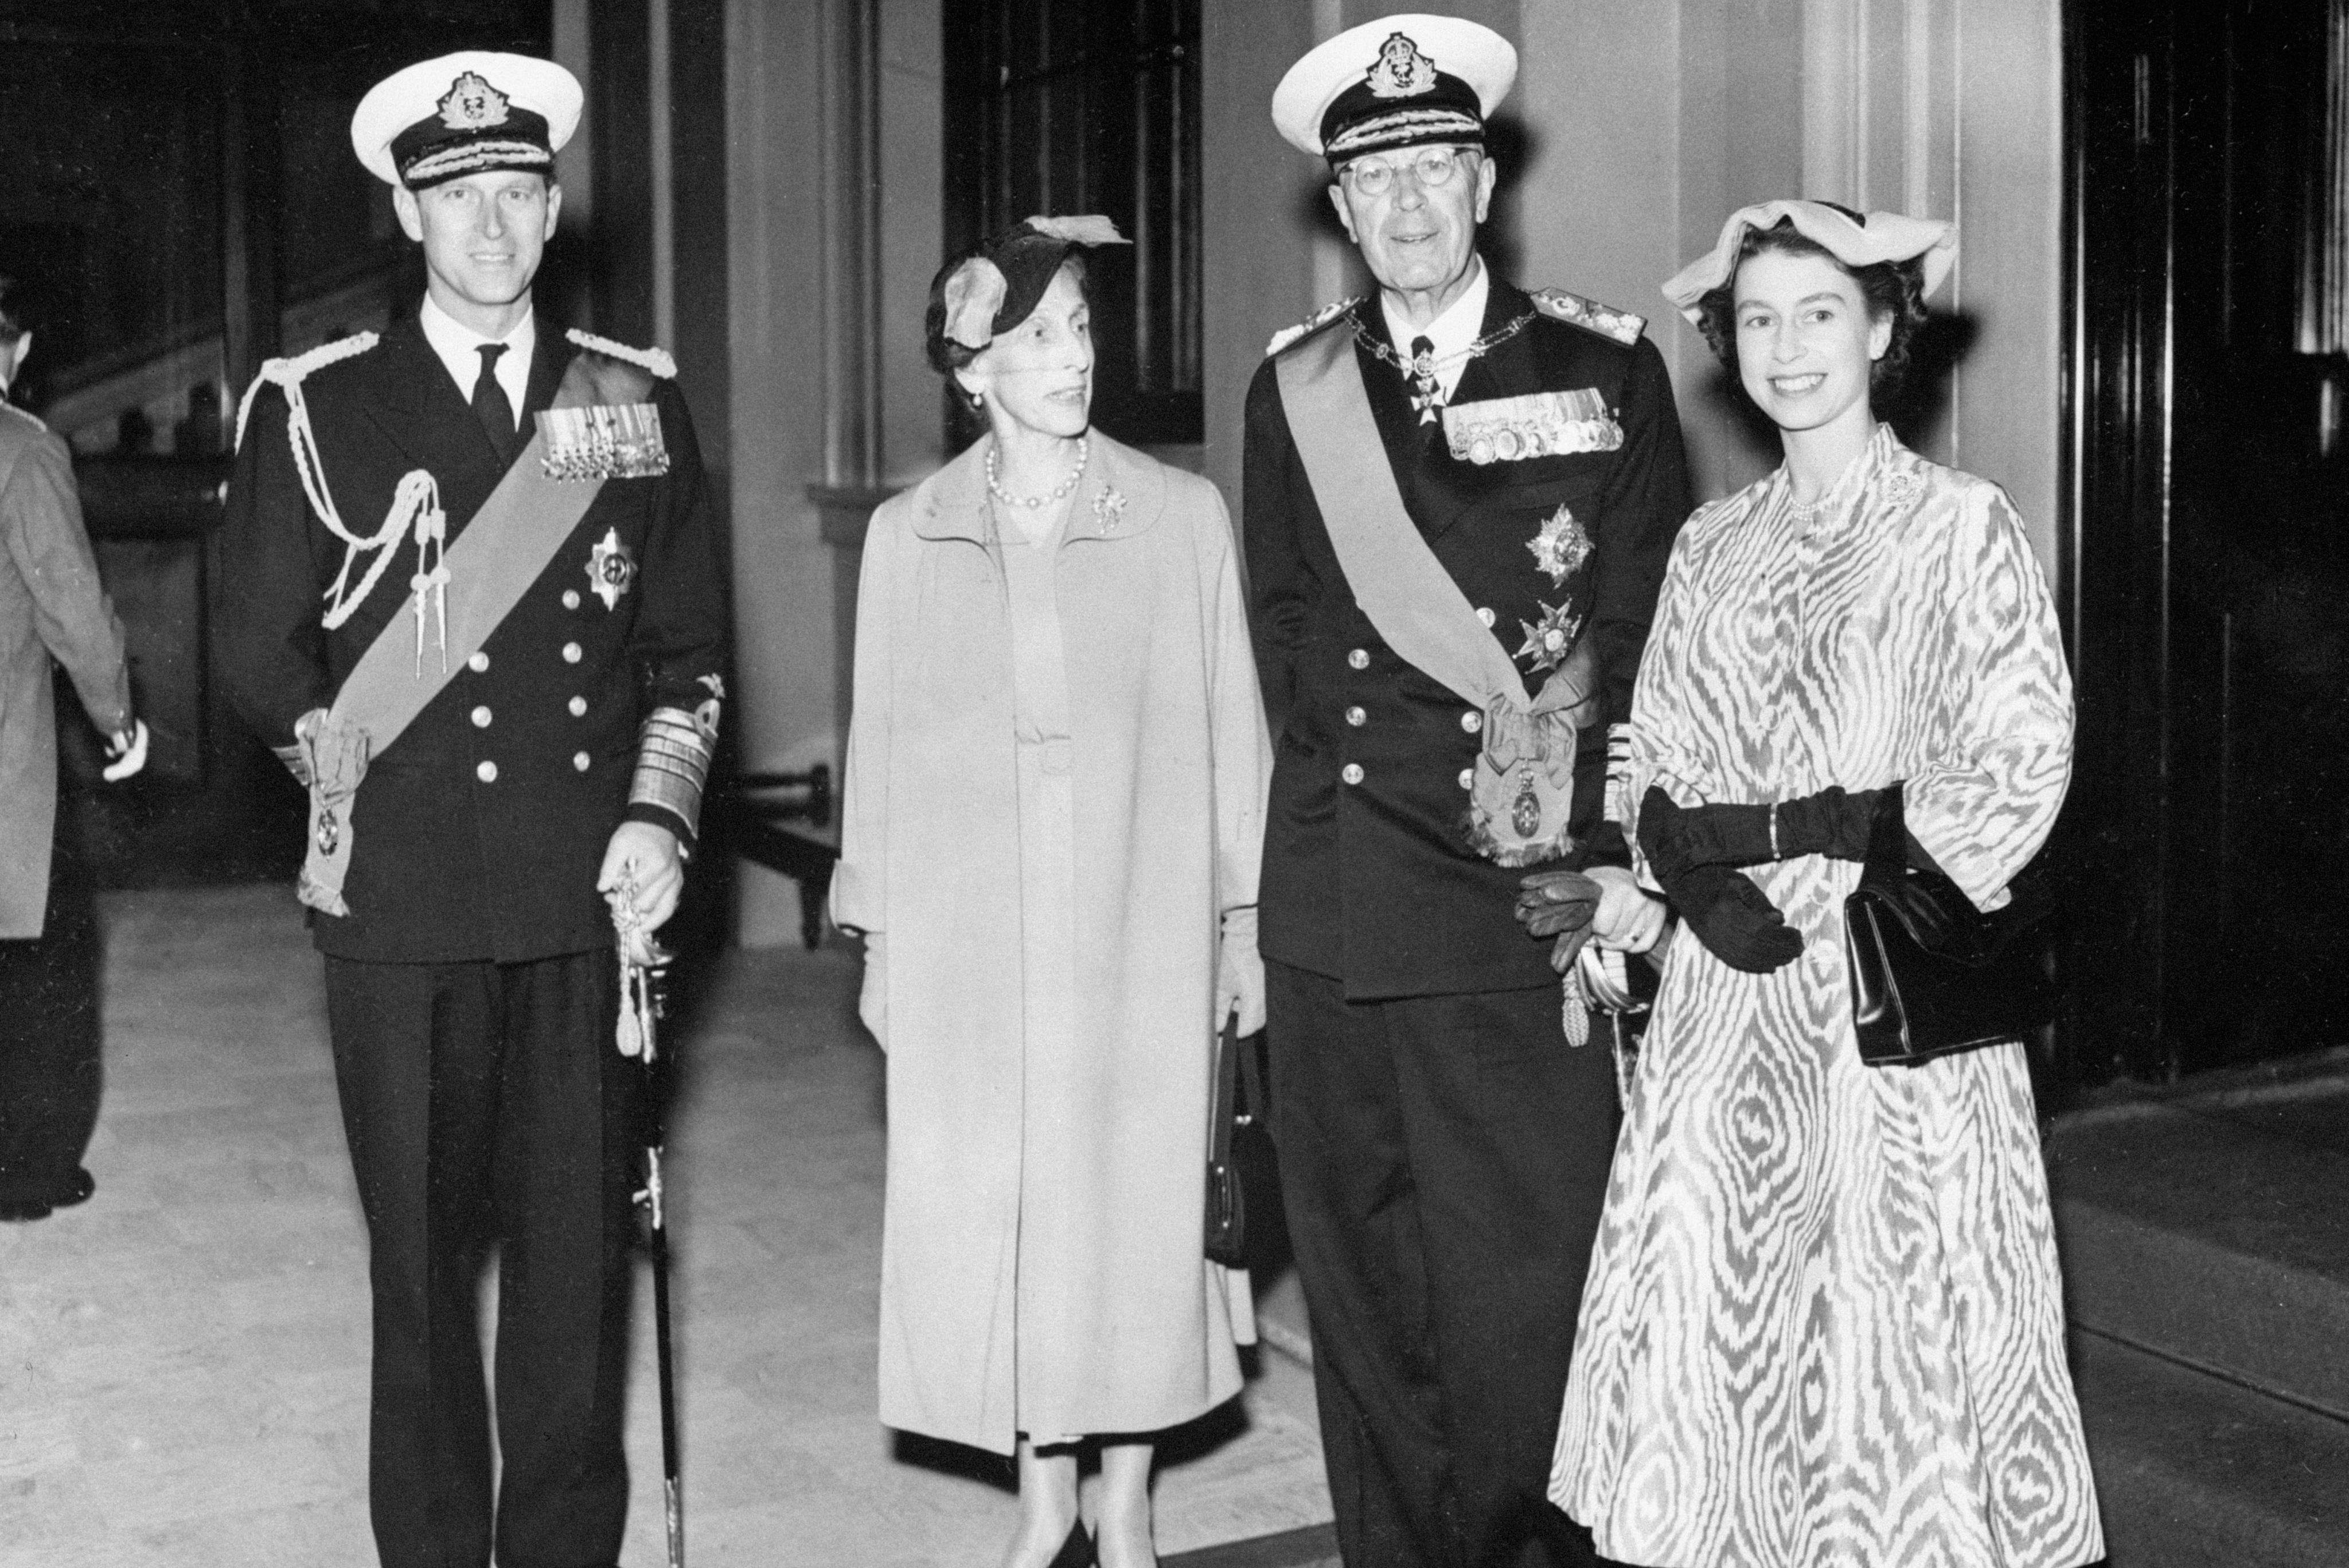 Royalty - Visits of Foreign Royalty - King Gustav VI and Queen Louise of Sweden - Buckingham Palace, London